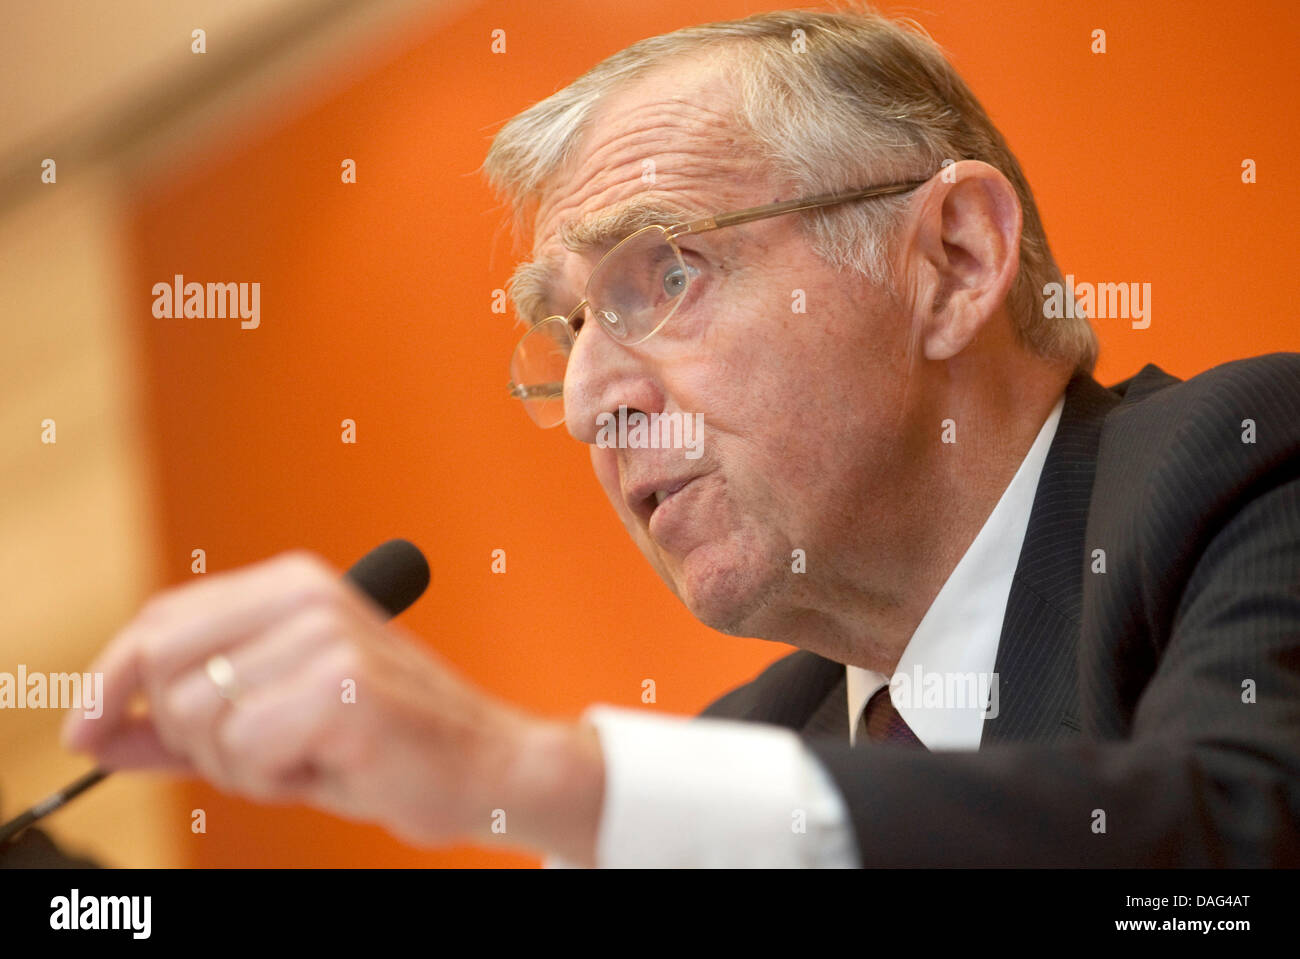 CEO of Sixt, Erich Sixt, speaks at a press briefing on annual results in Munich, Germany, 17 March 2011. The company - Stock Image